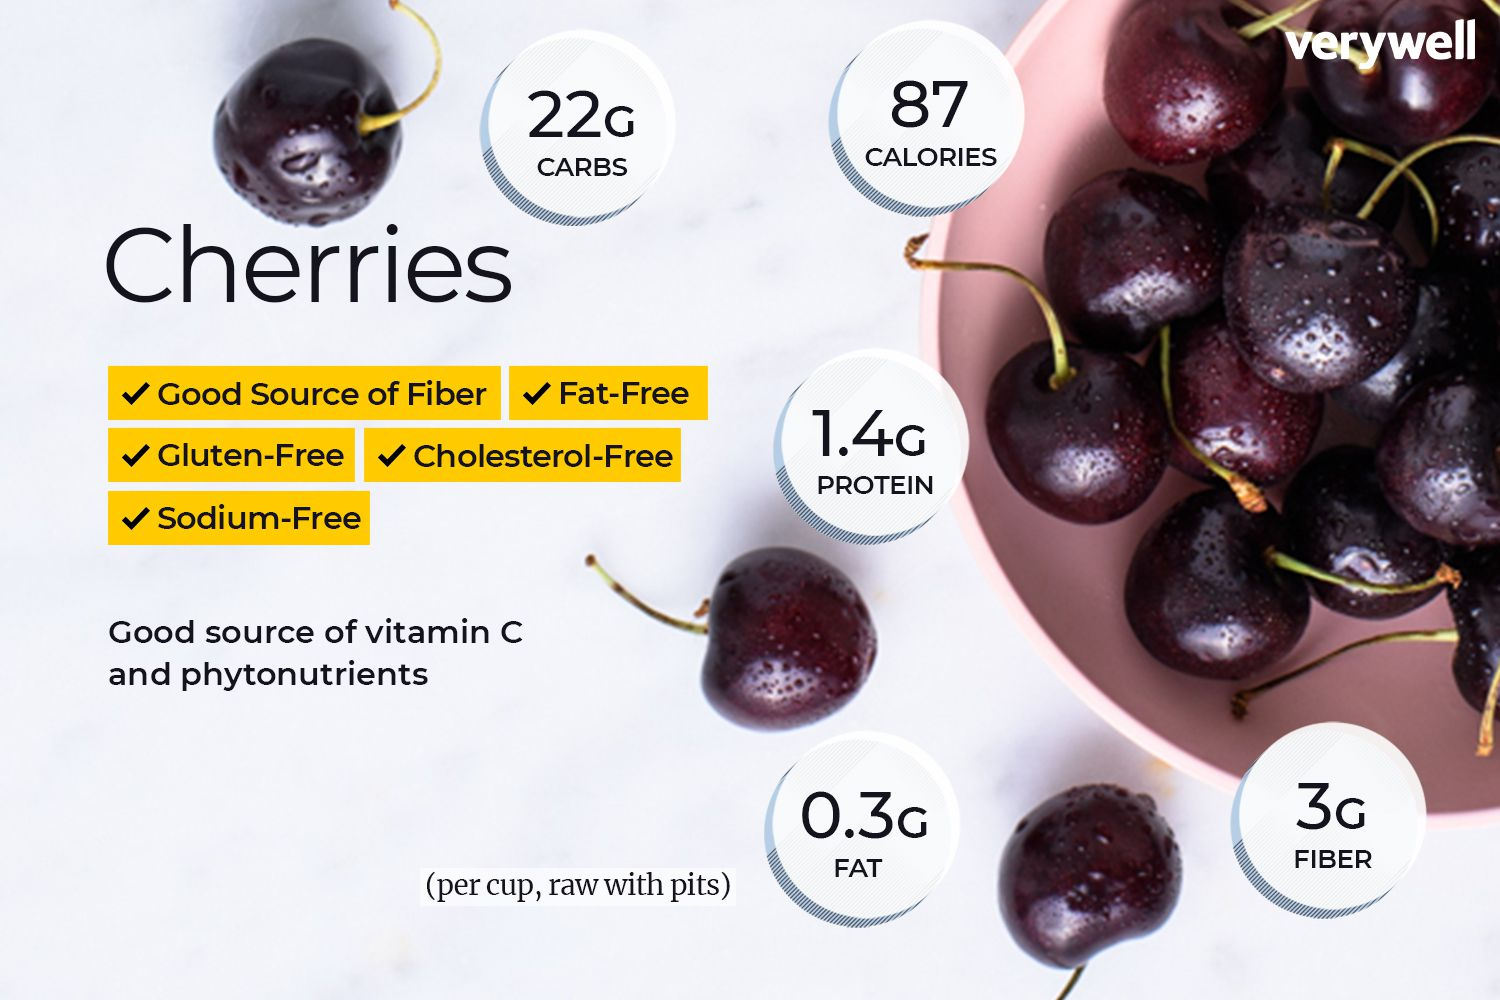 Cherries Nutrition Facts: Calories, Carbs and Health Benefits